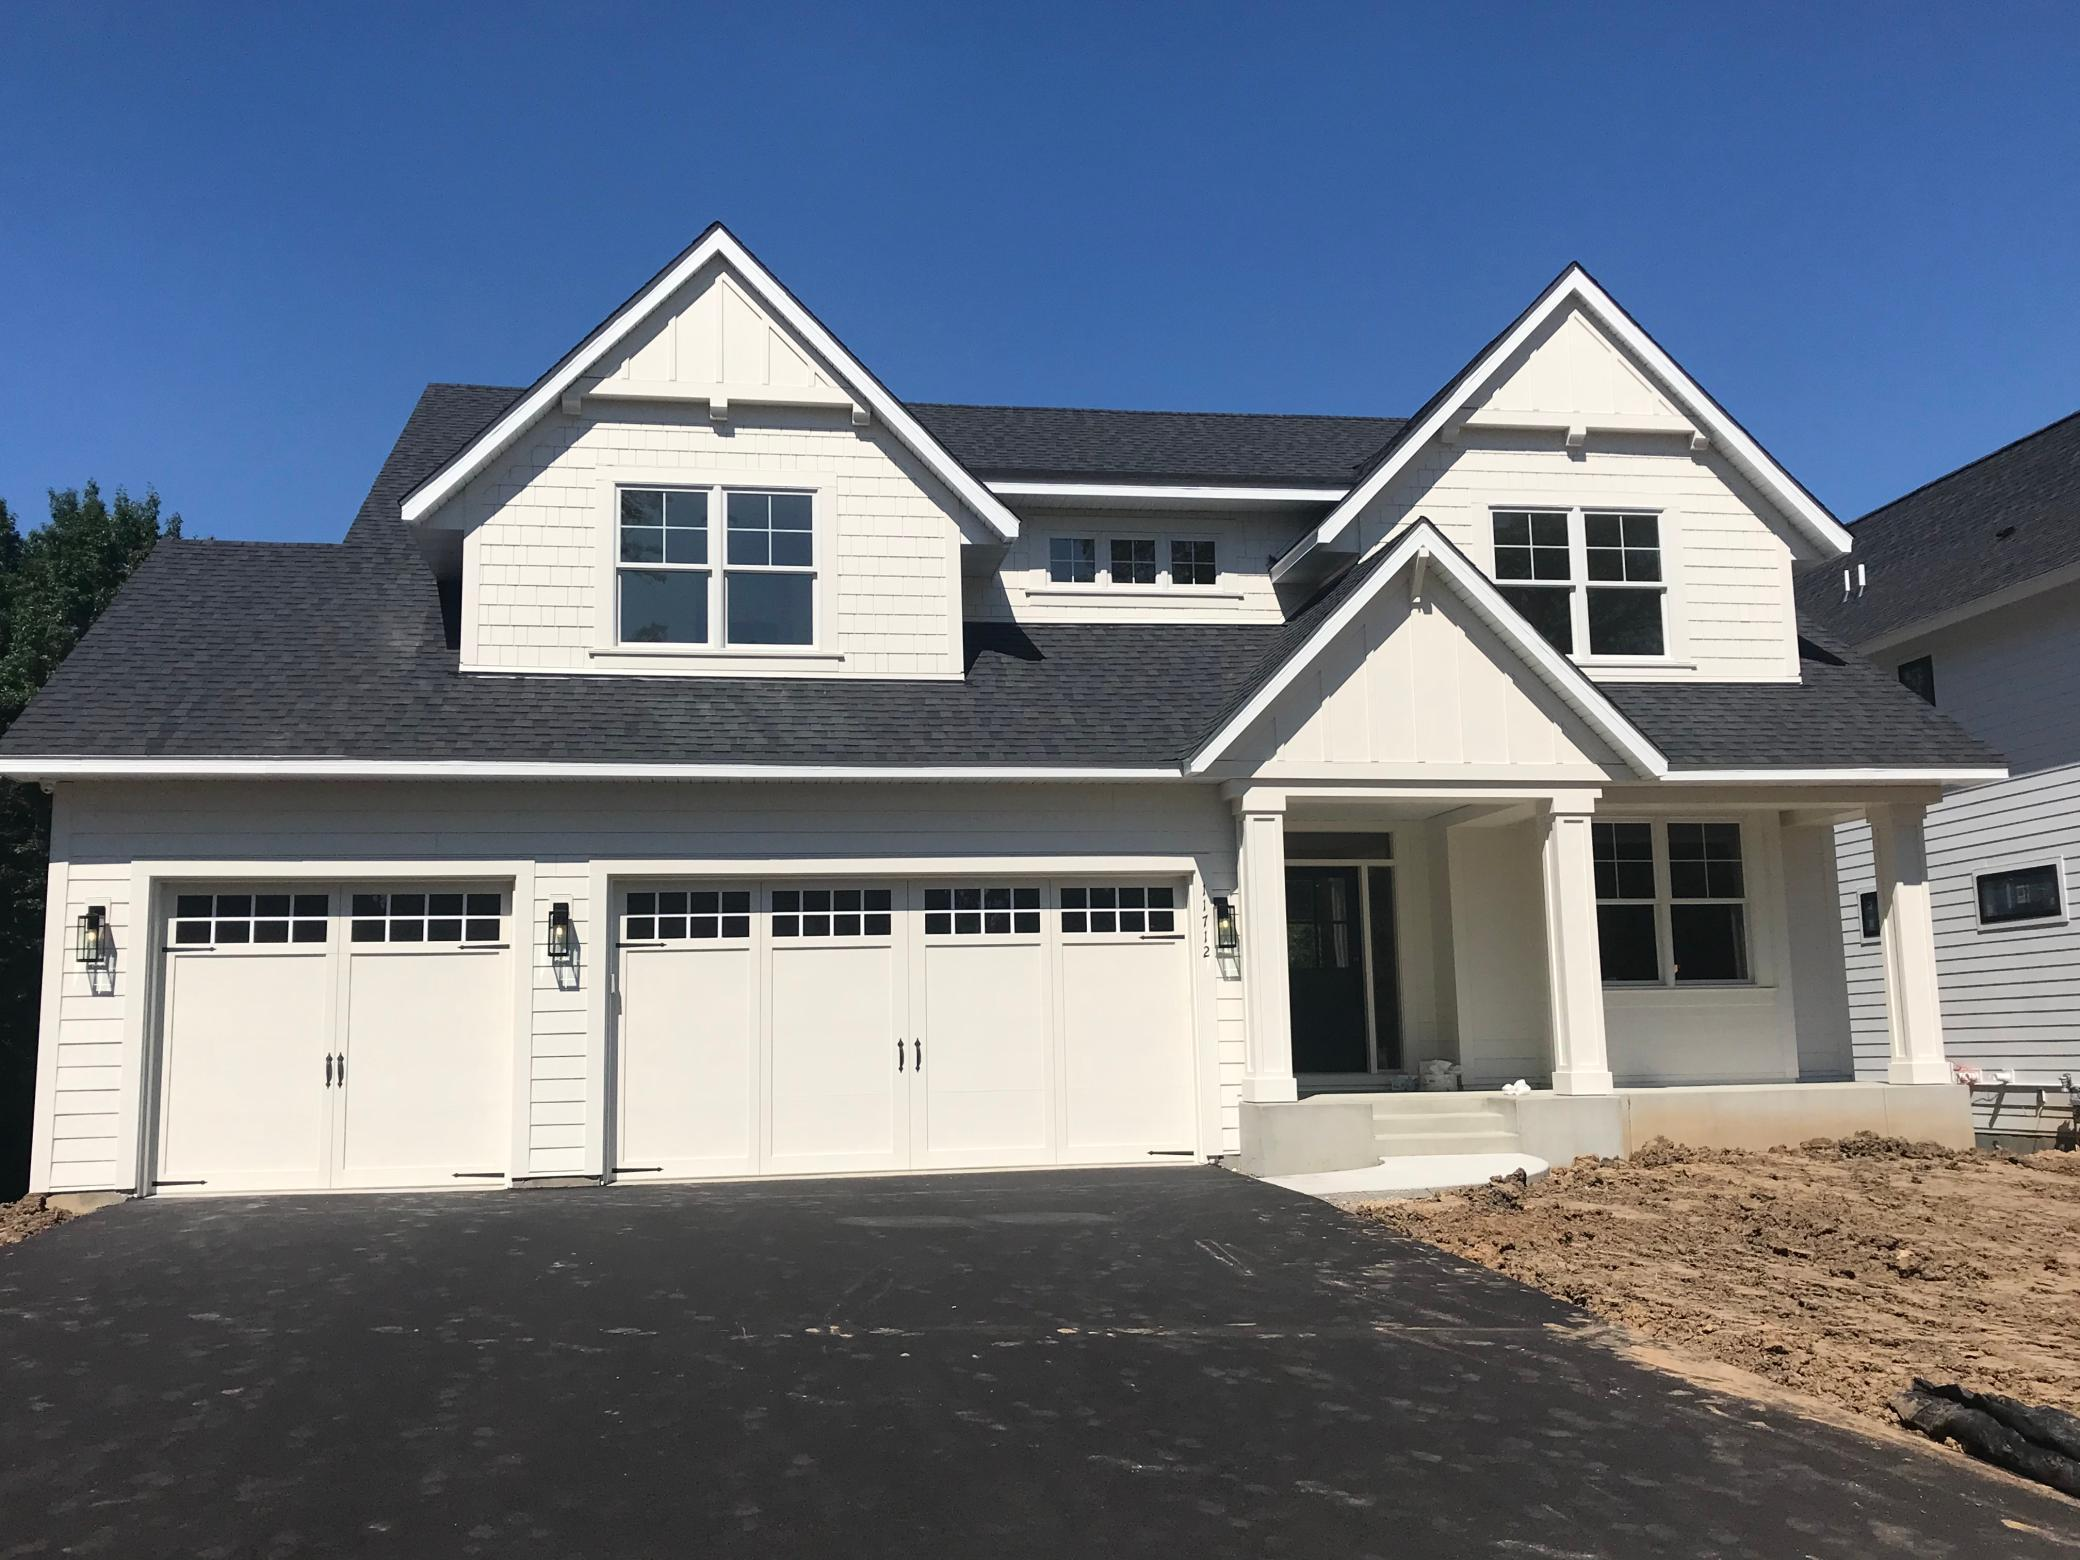 11712 Azure Property Photo - Inver Grove Heights, MN real estate listing